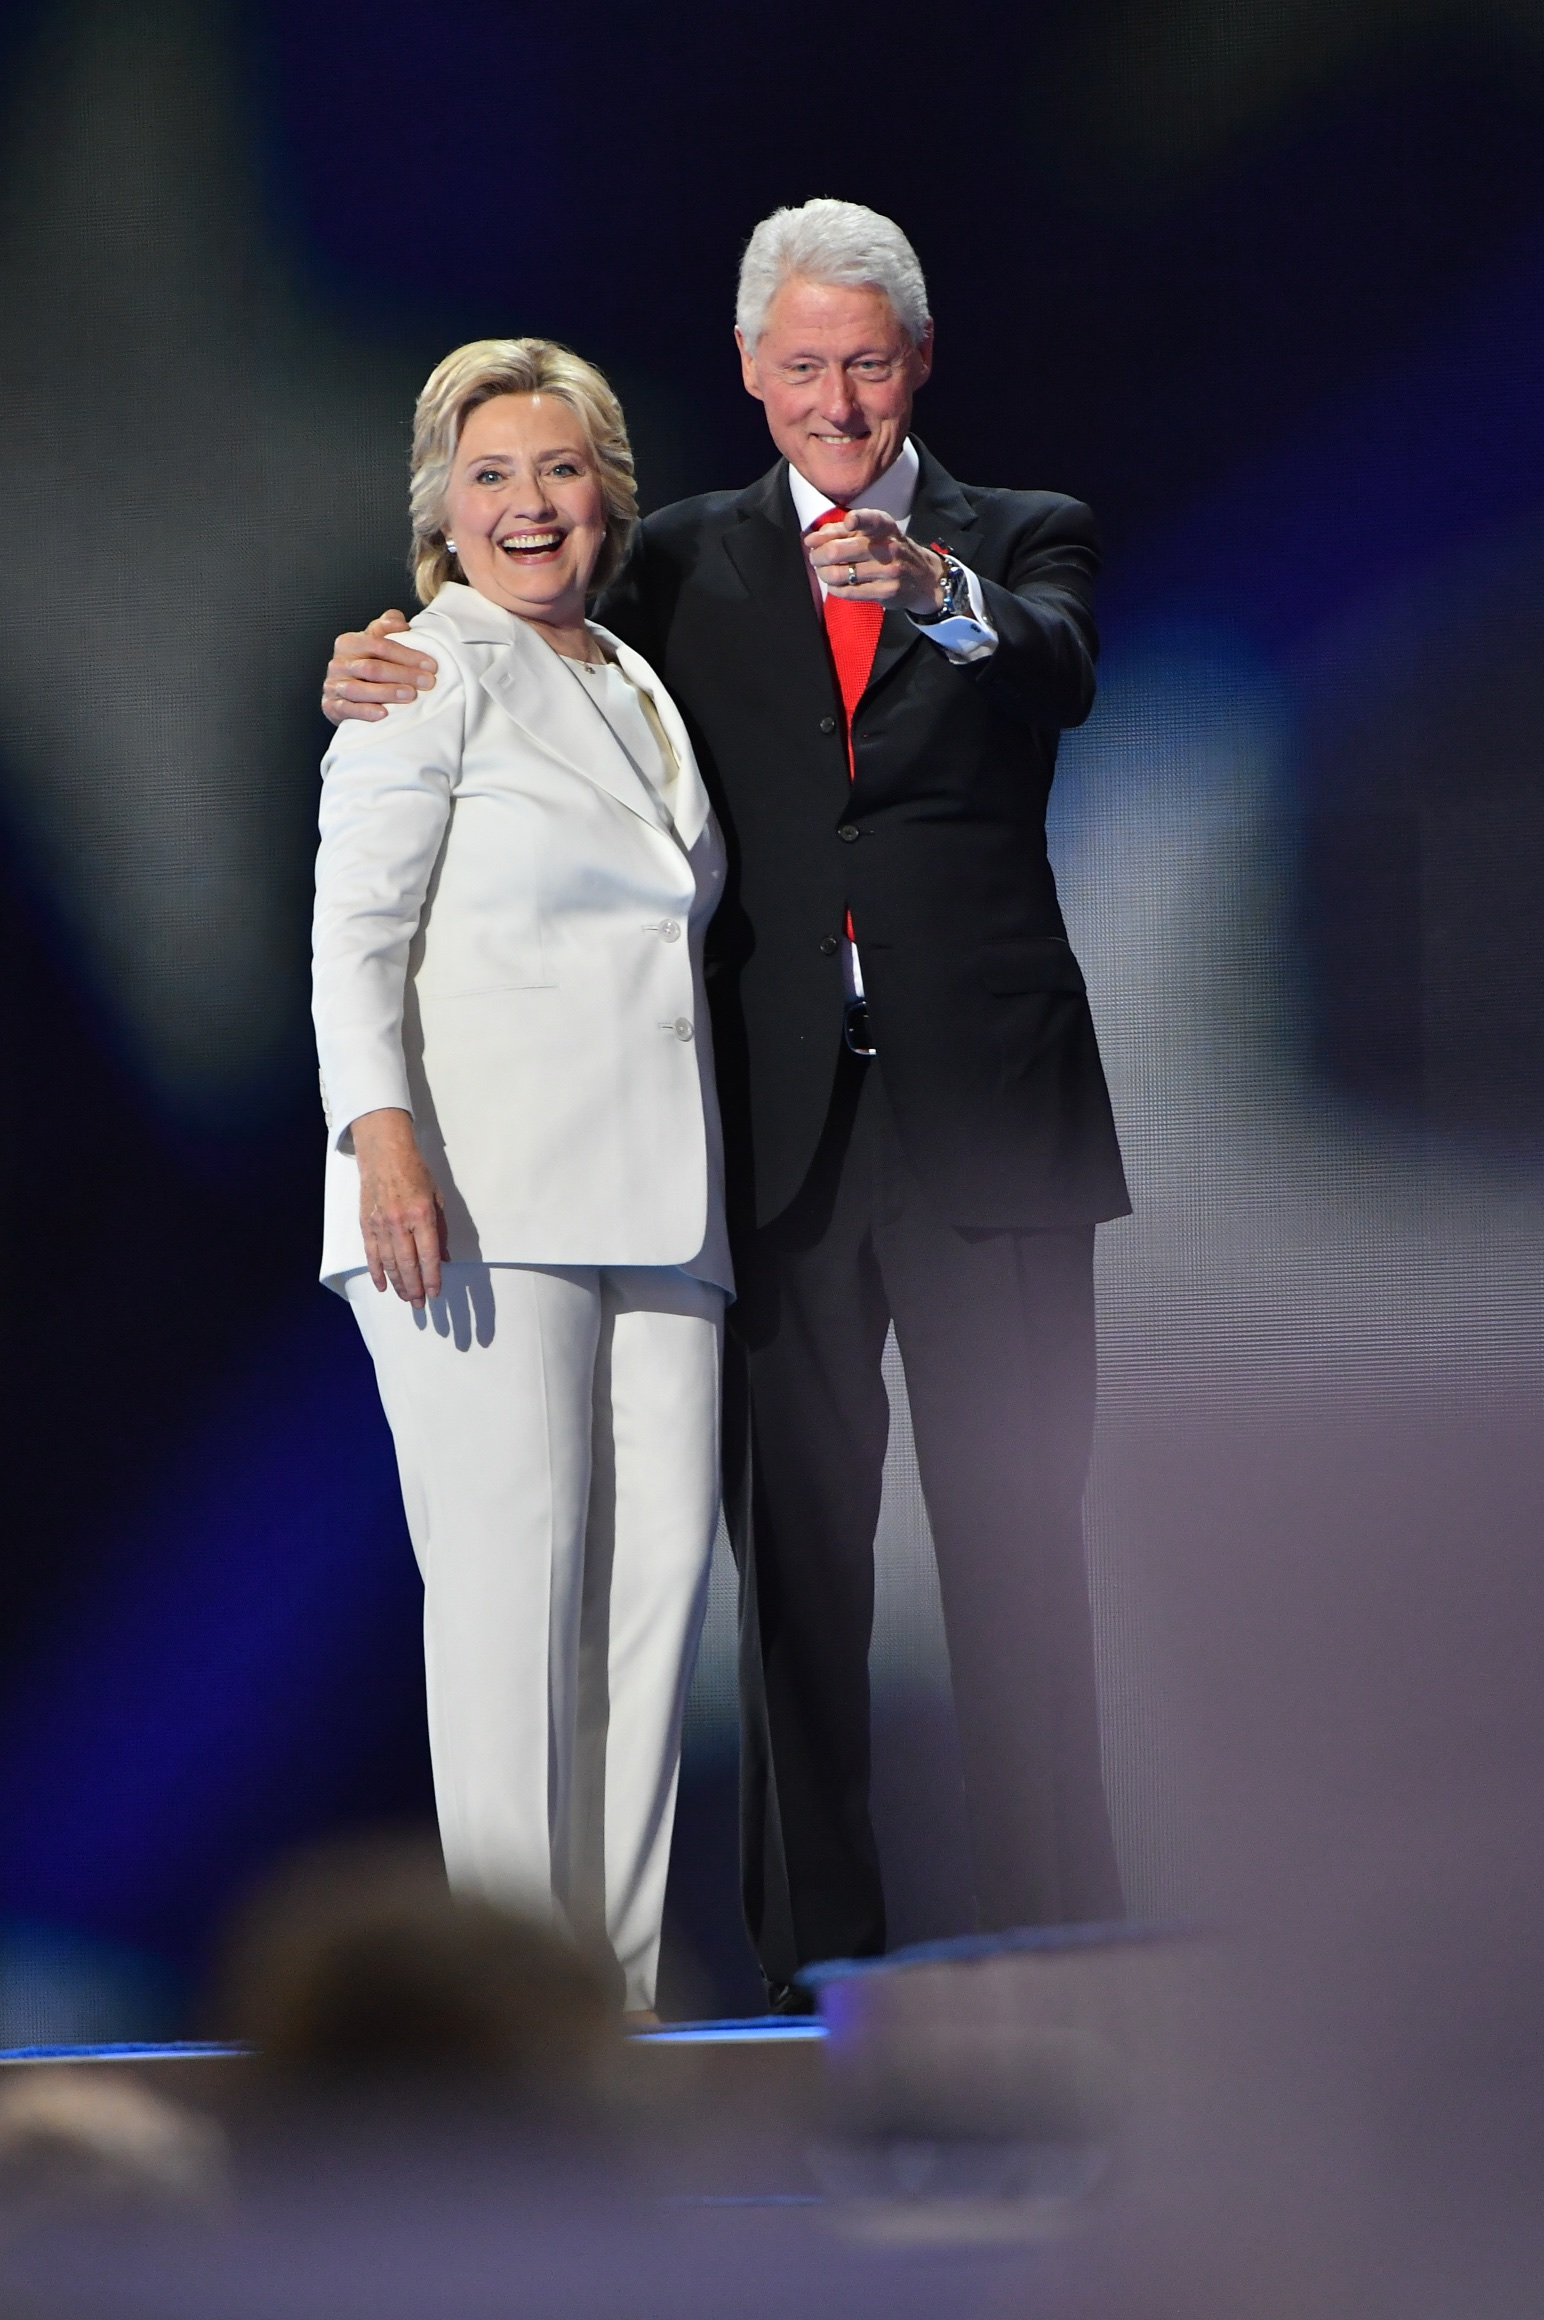 2016 Democratic National Convention - Day 4